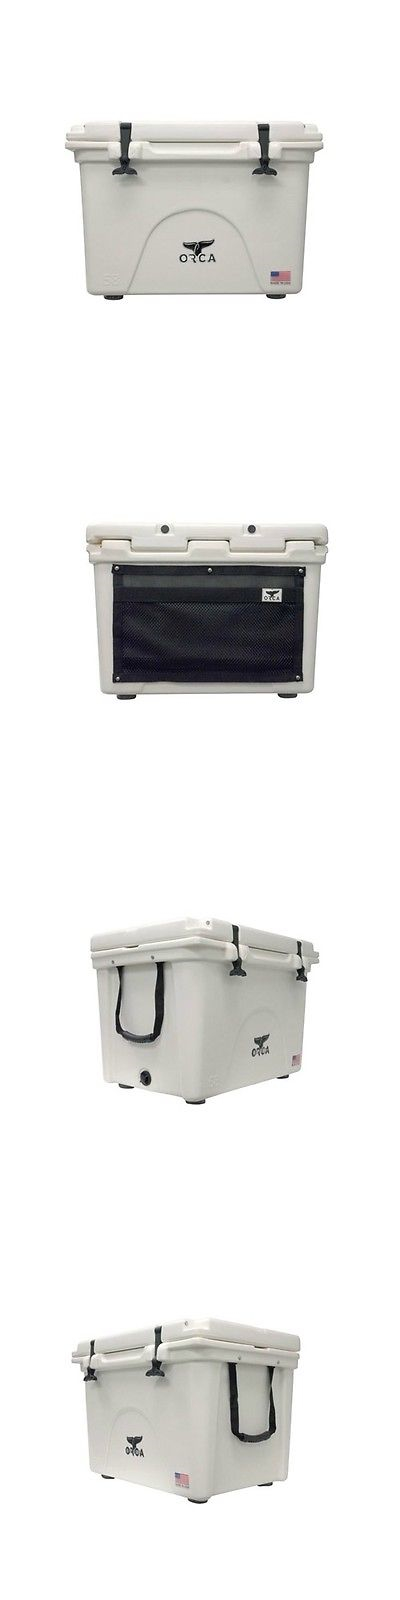 Camping Ice Boxes And Coolers 181382 Orca Coolers Orcw058 Insulated 58 Qt Quart White Ice Chest Cooler Buy It Now Only Ice Chest Cooler Orca Cooler Ice Chest